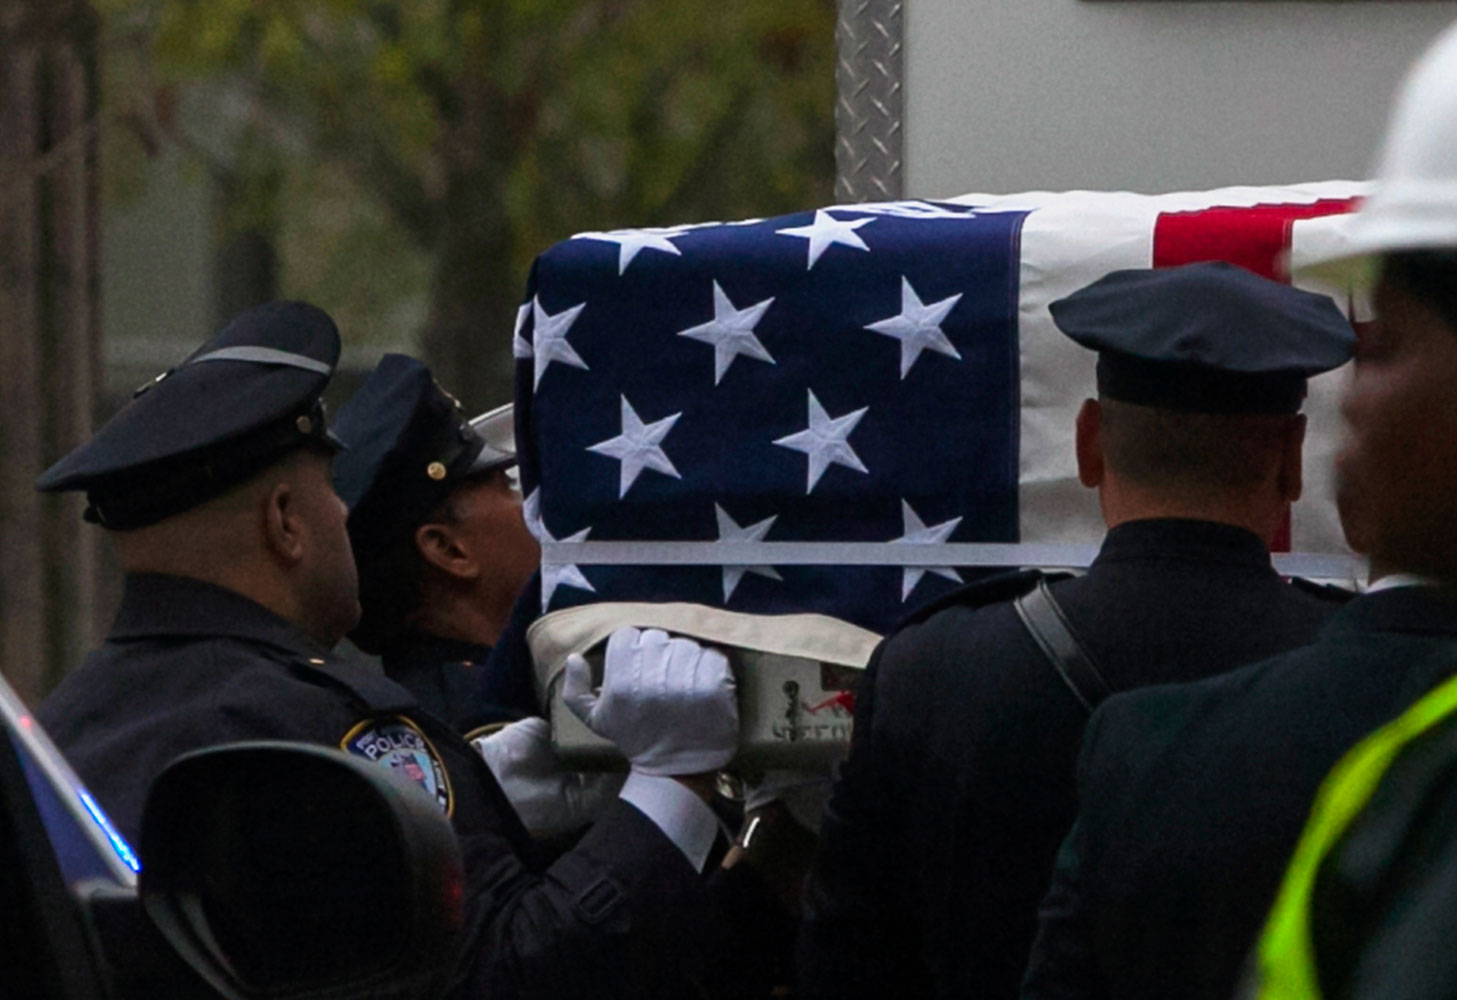 Emergency personnel carry a casket draped with a U.S. flag during the ceremonial transfer of the 9/11 unidentified remains to the Office of the Chief Medical Examiner of the City of New York (OCME) repository at the World Trade Center site, in New York May 10, 2014.